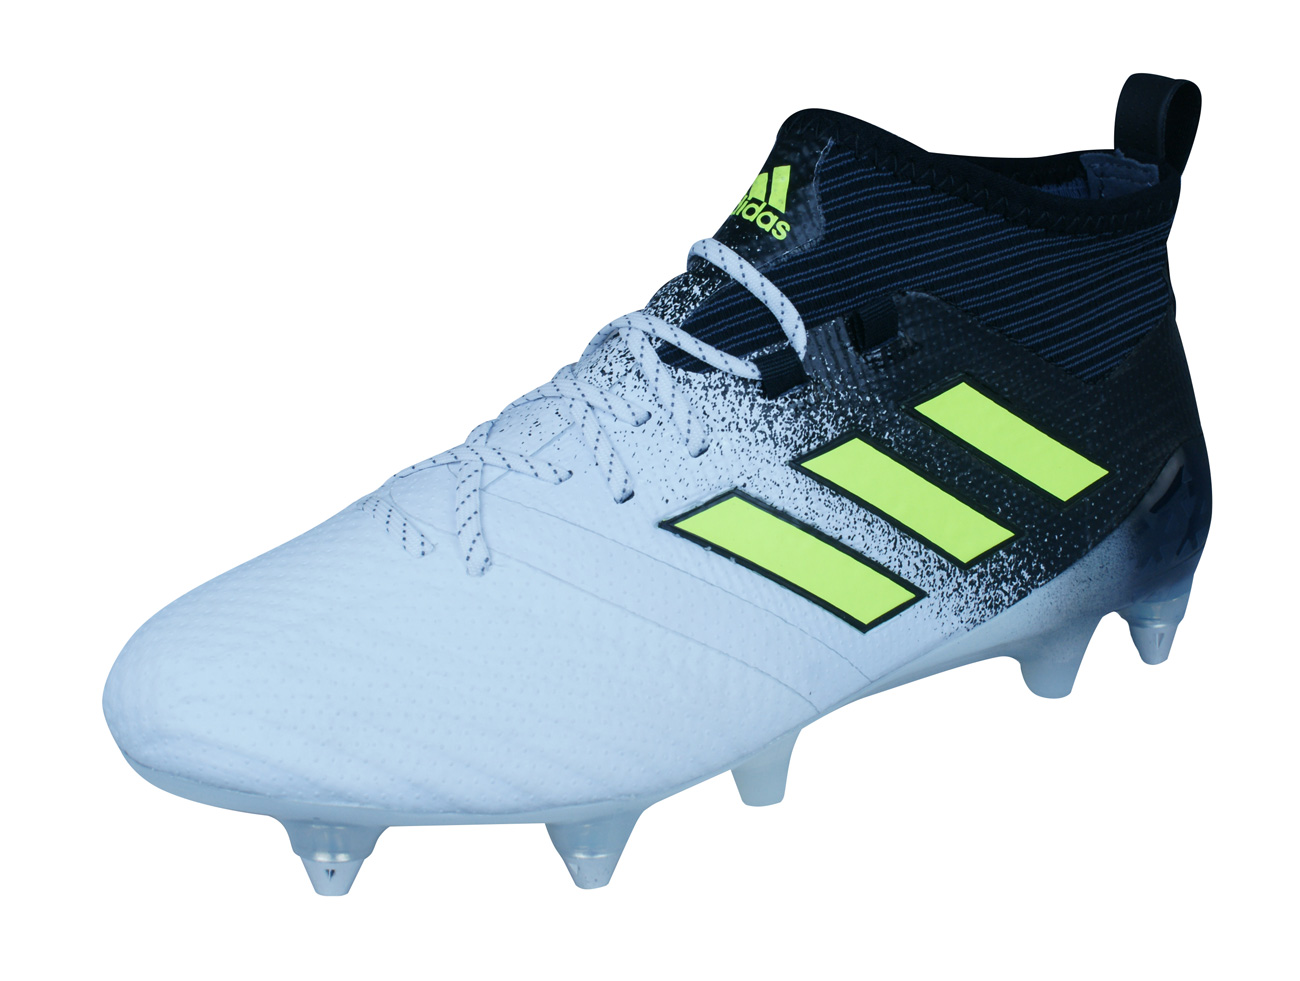 Adidas Ace 15.1 Soft Ground Football Boots Black Available